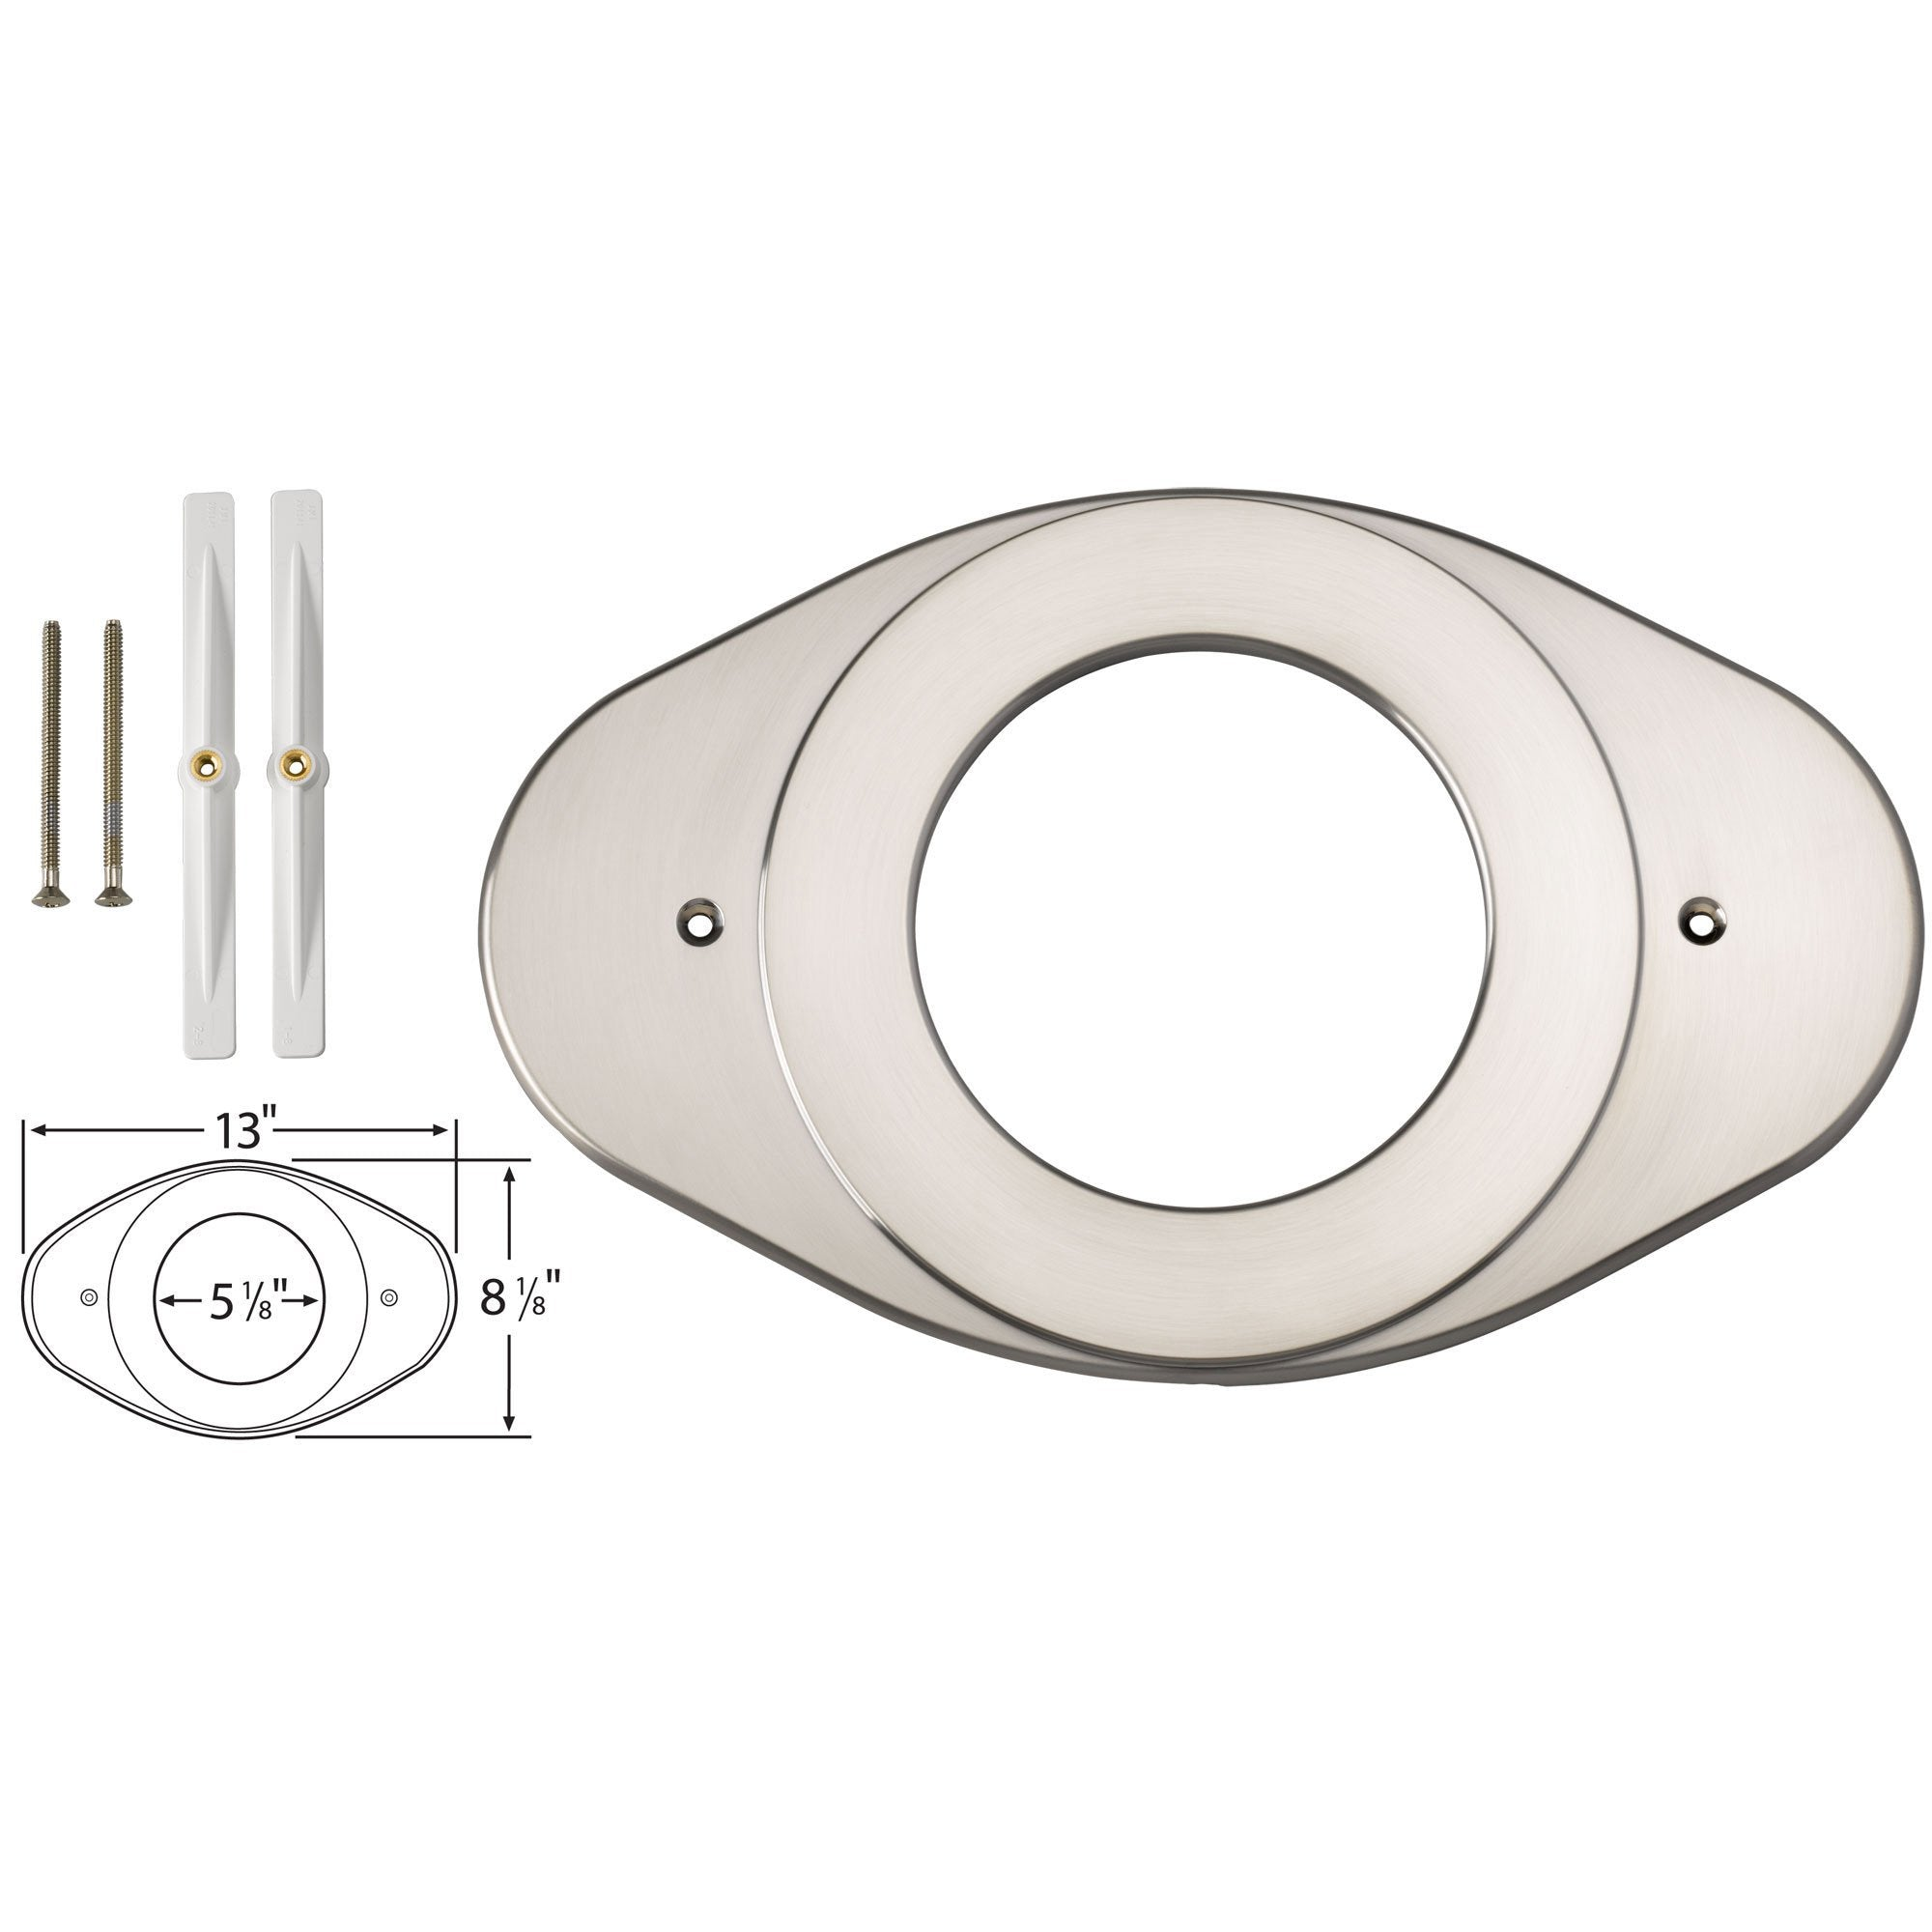 Delta Stainless Steel Finish Shower Valve Renovation Cover Plate 528570